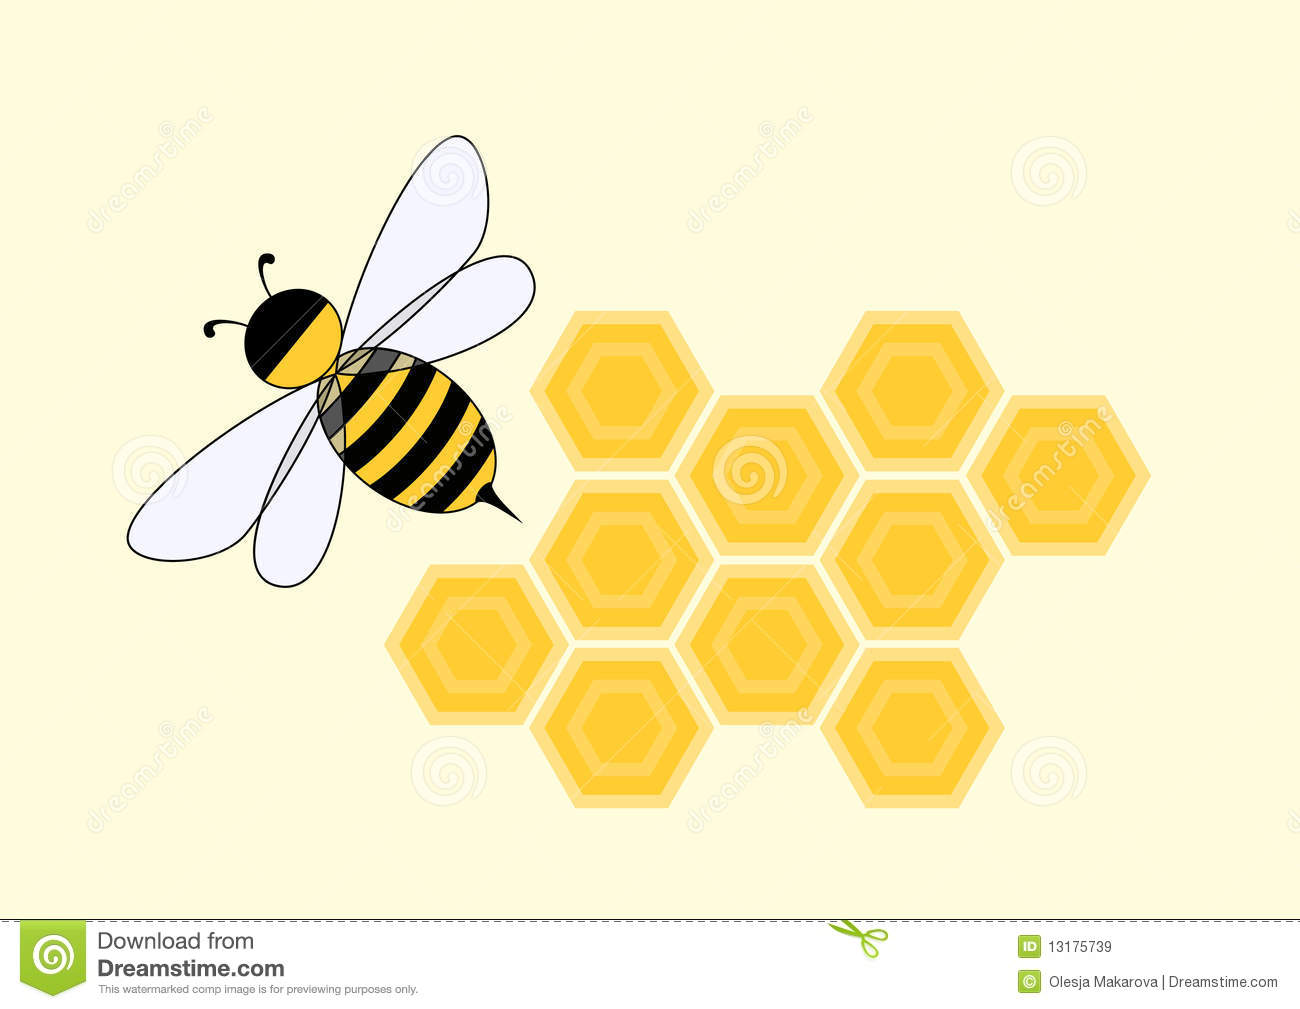 Cartoon Bee In Honeycomb Royalty Free Stock Images - Image: 13175739